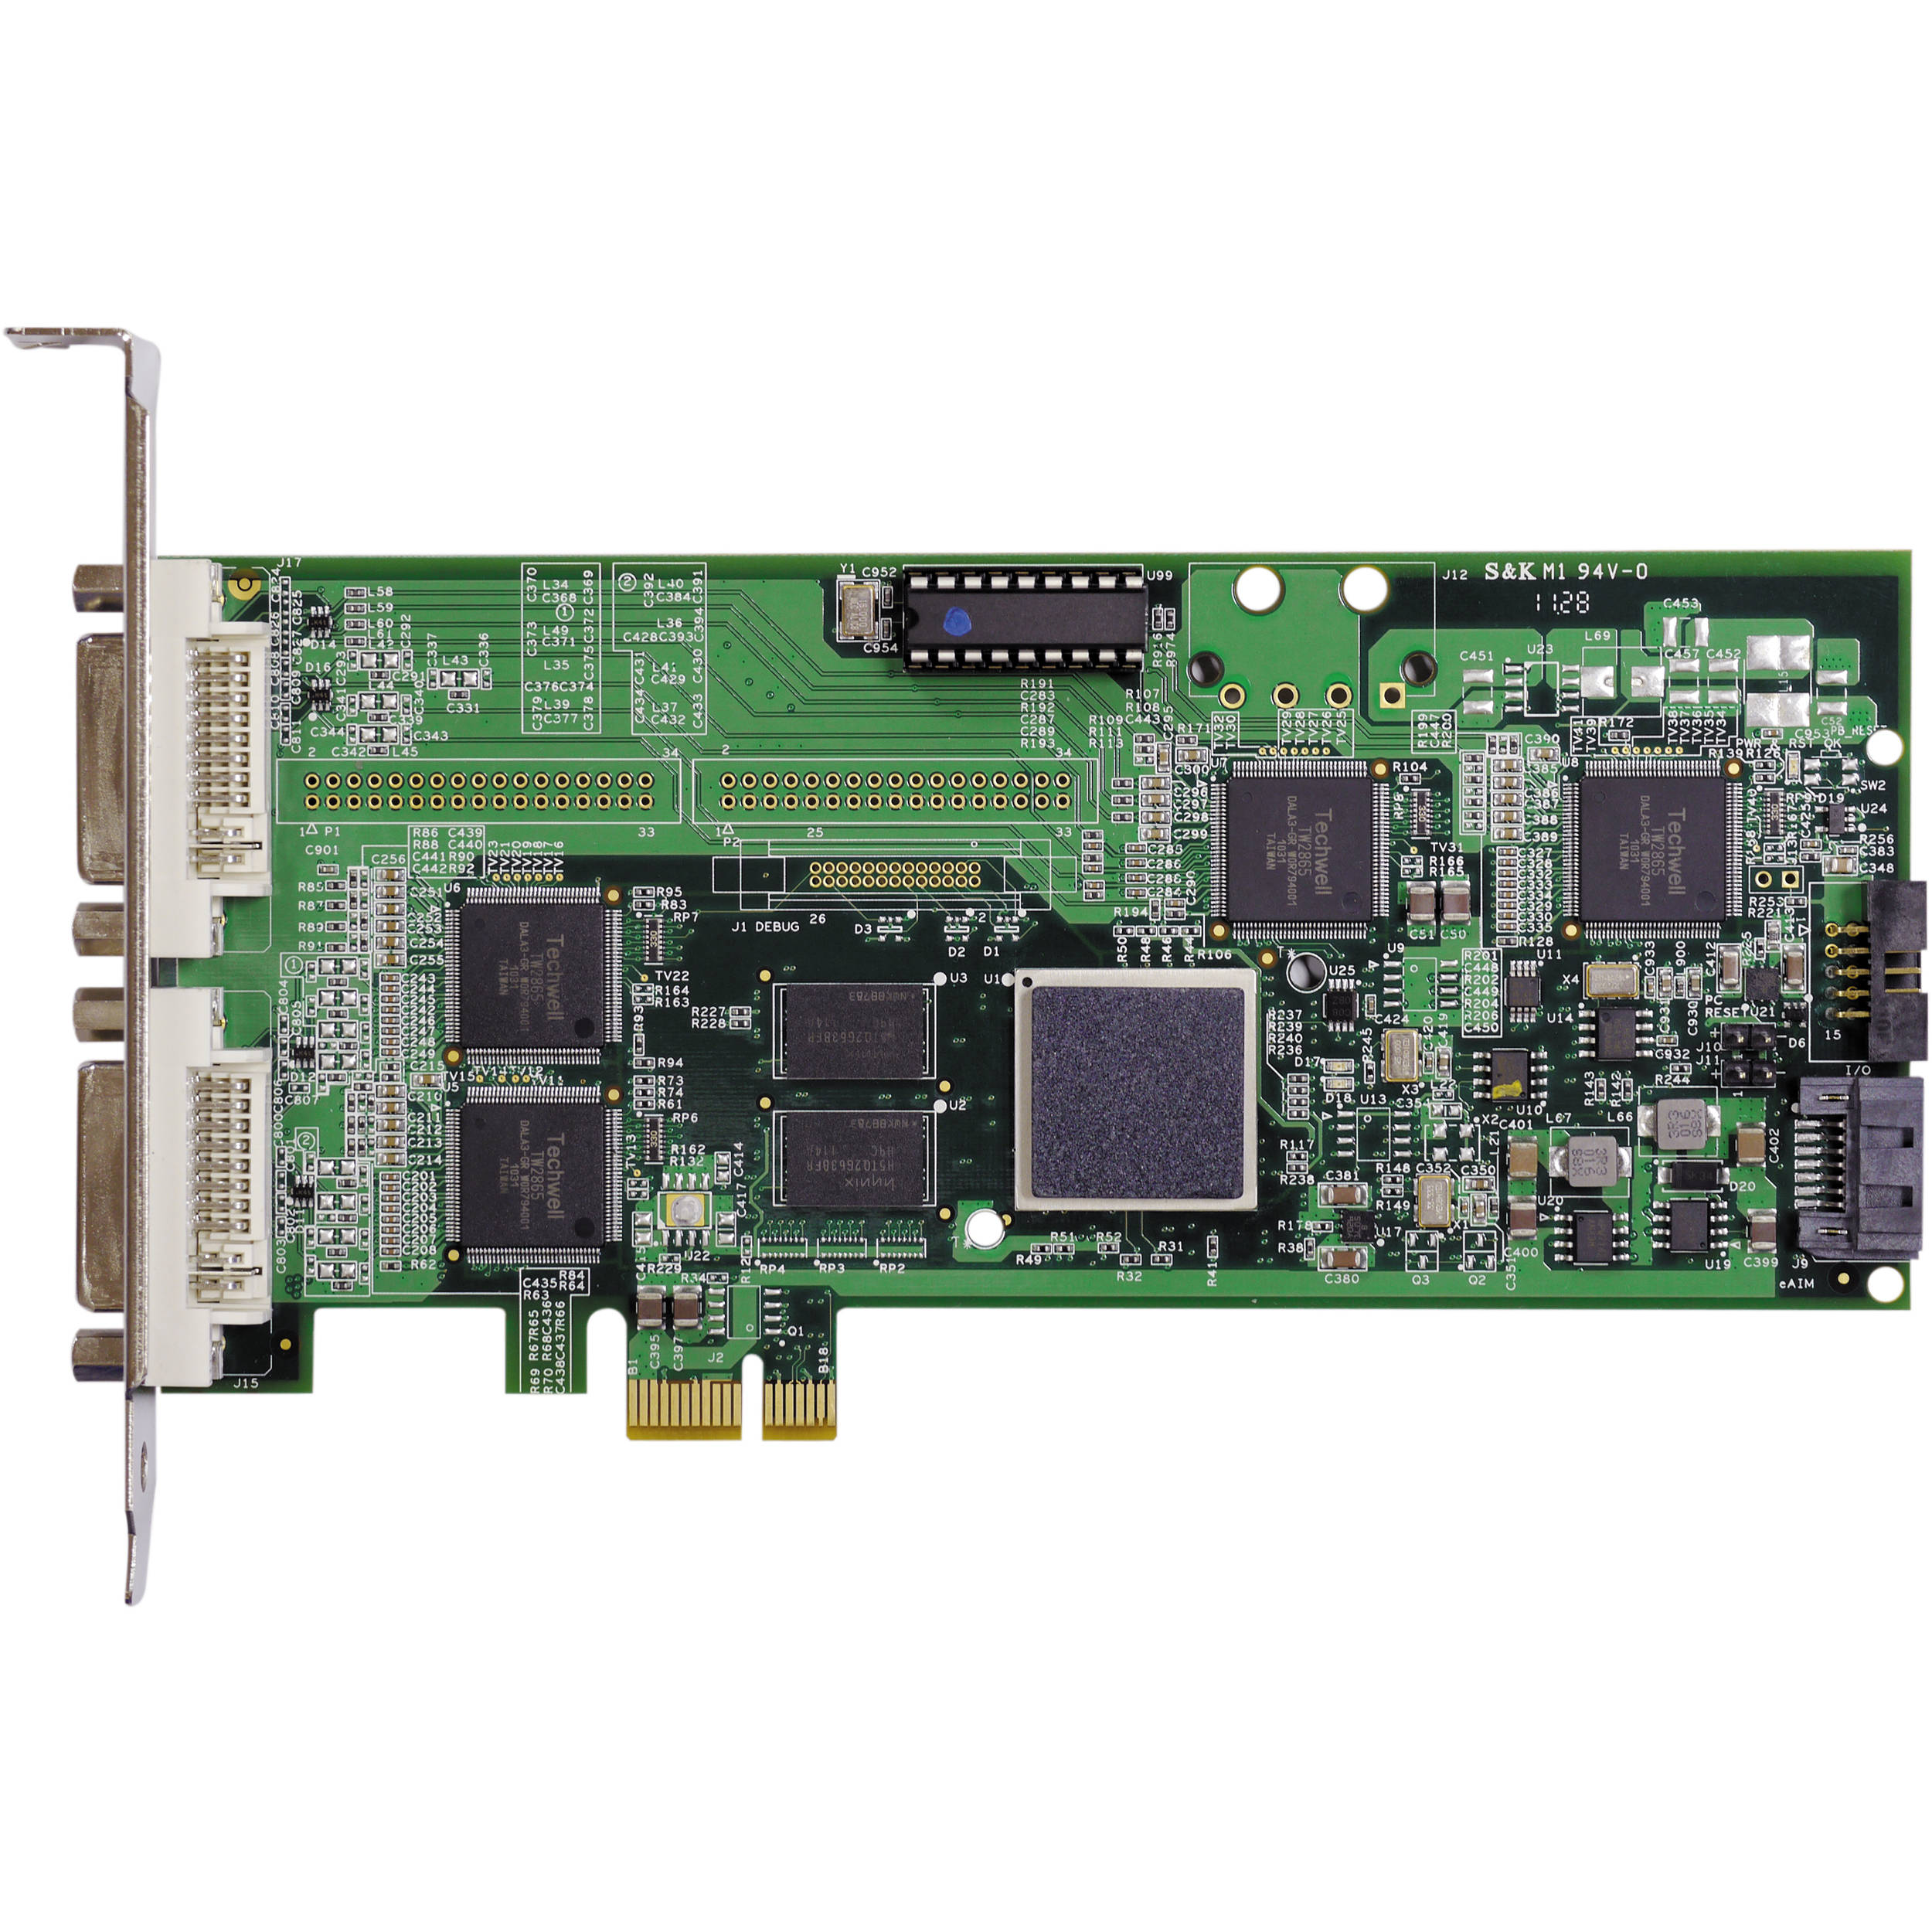 Nuuo scb6016s hardware capture card scb 6016s b h photo video for 6016 area code